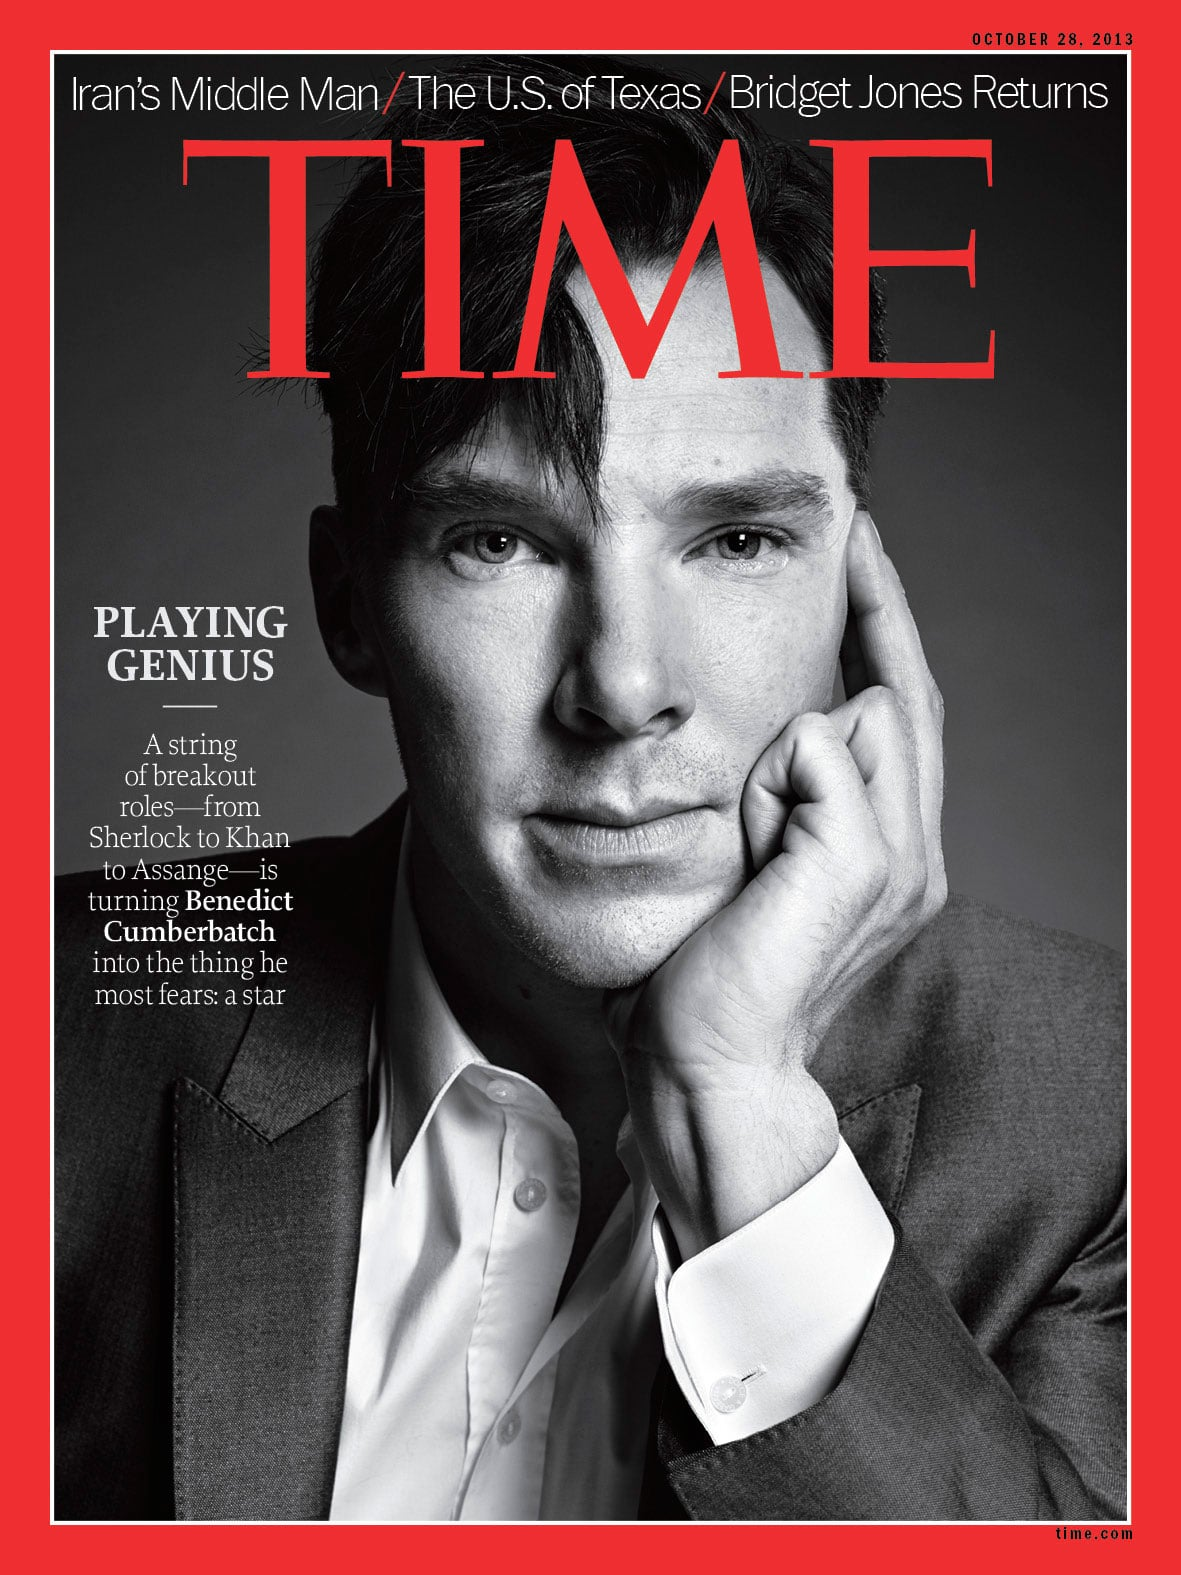 He thought his Time magazine cover was a joke.